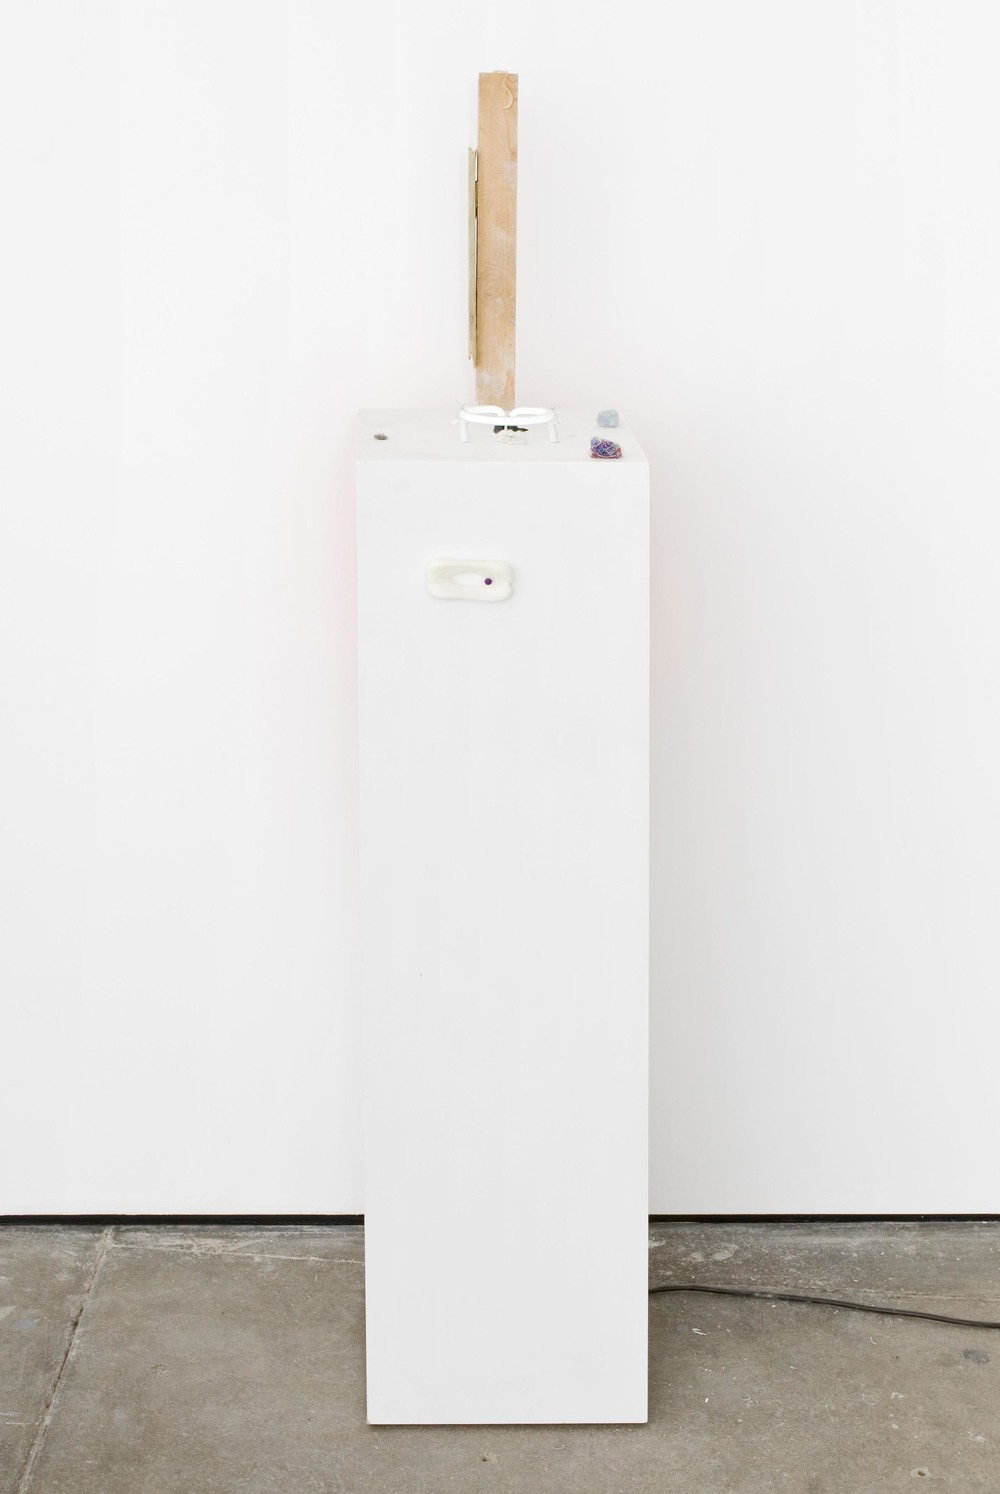 Rebecca Warren All that Heaven Allows 2007 MDF Plinth with Mixed Media 160 x 30 x 30 cm